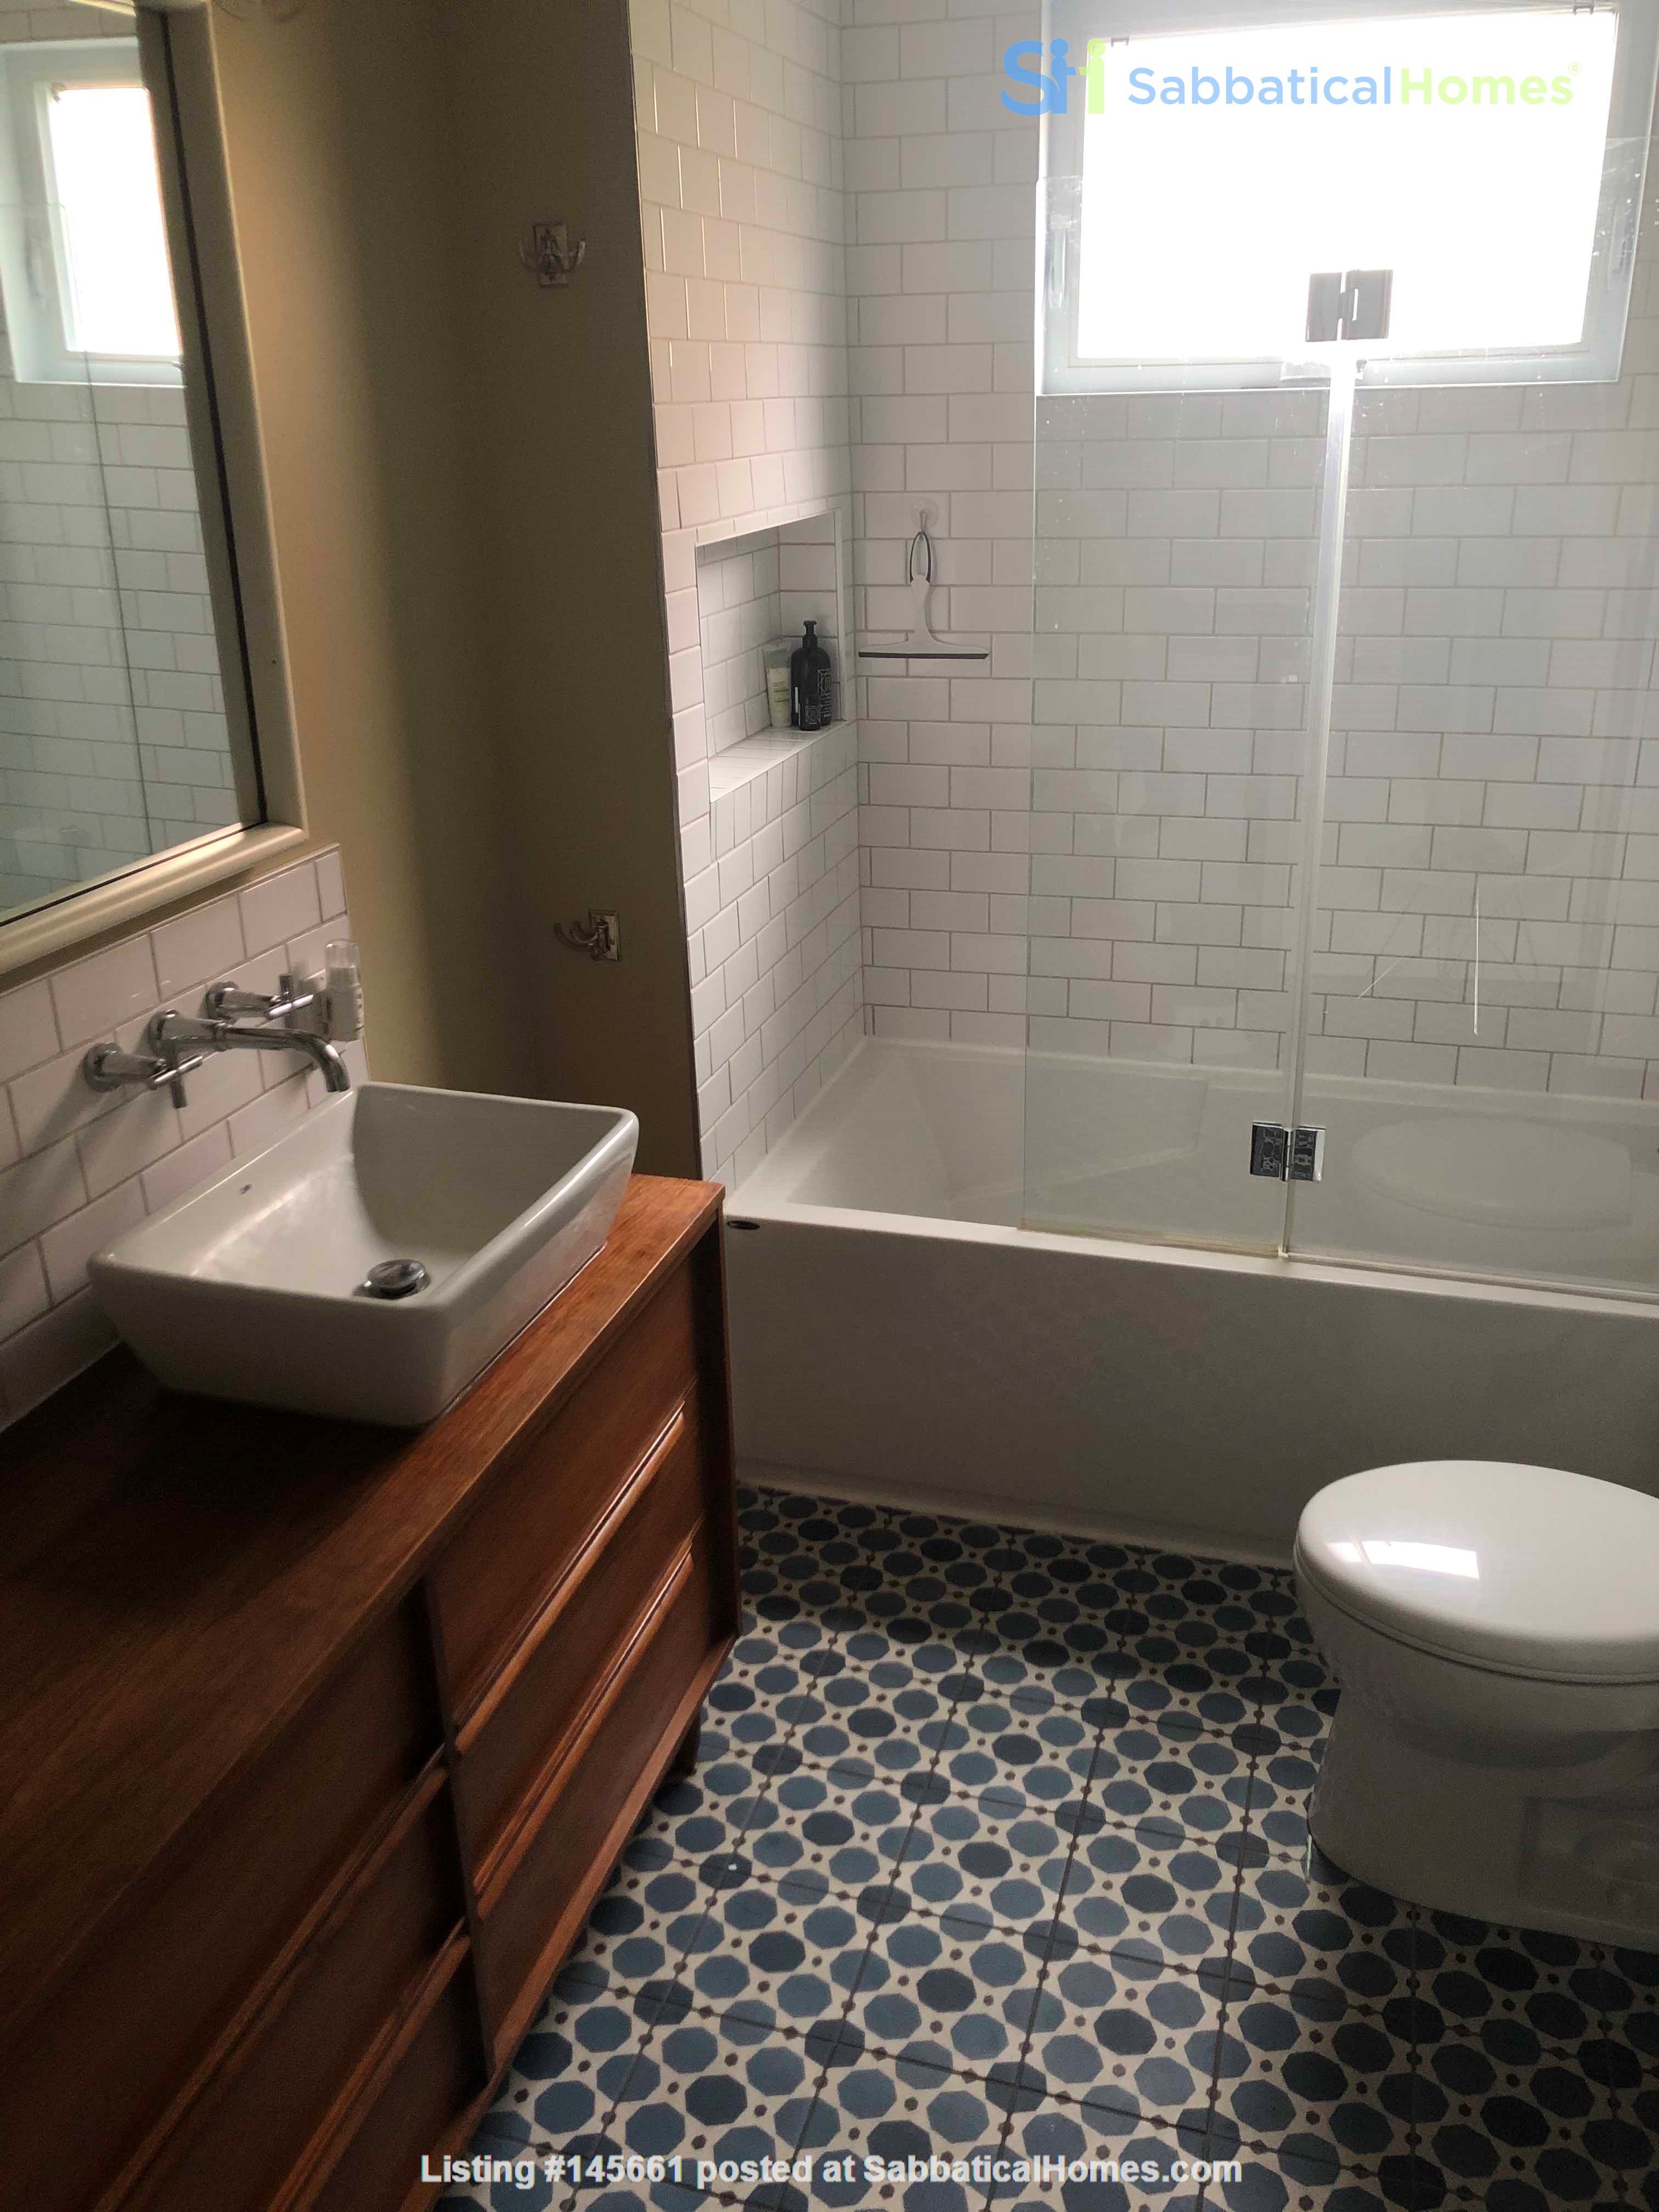 Beautiful fully furnished 2 BR in Vieux-Rosemont Home Rental in Montréal, Québec, Canada 4